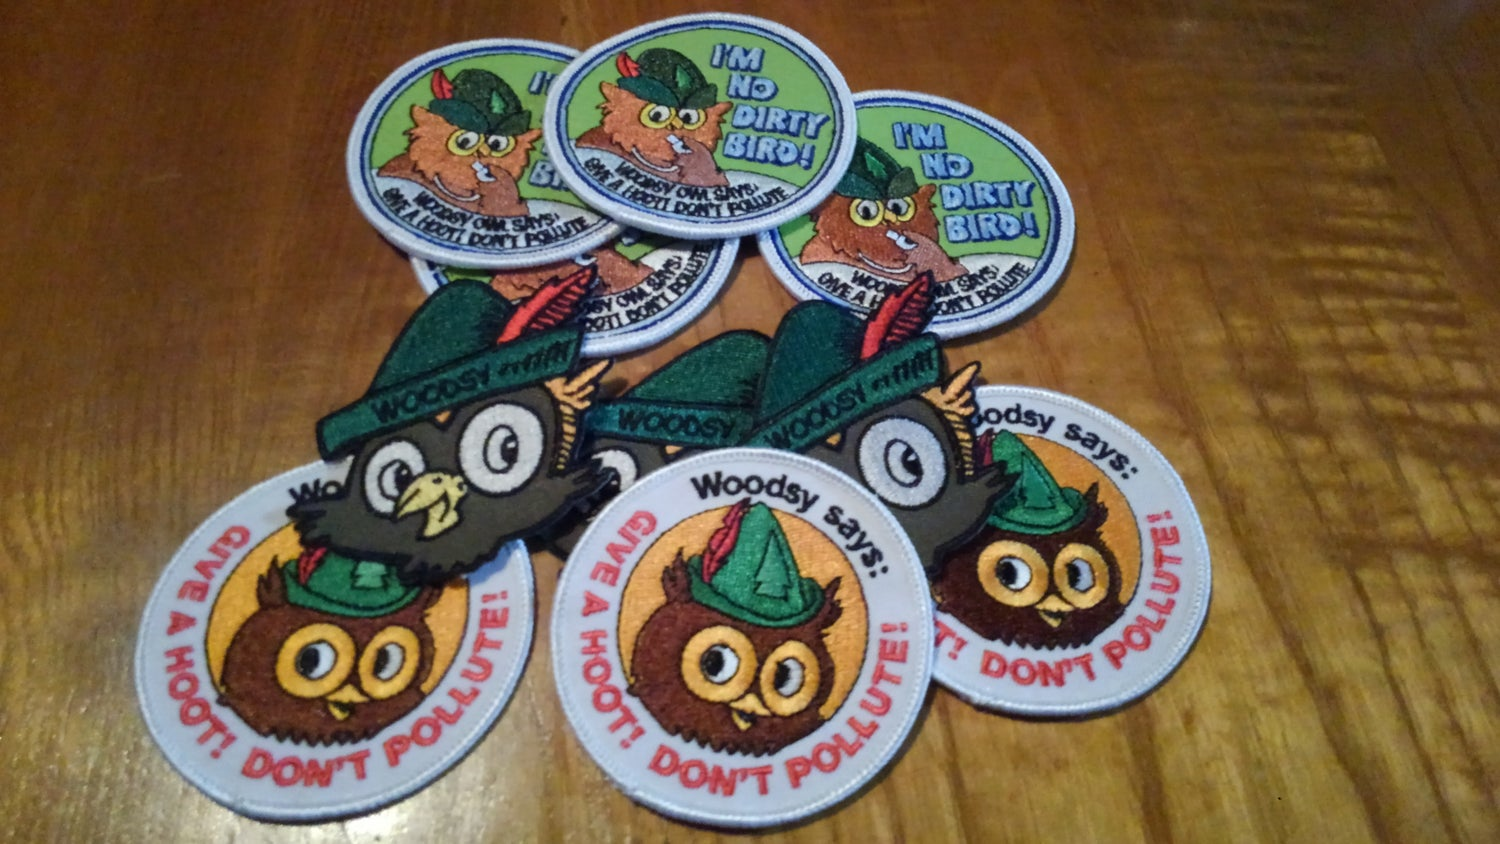 Image of Woodsy Owl embroidered patches